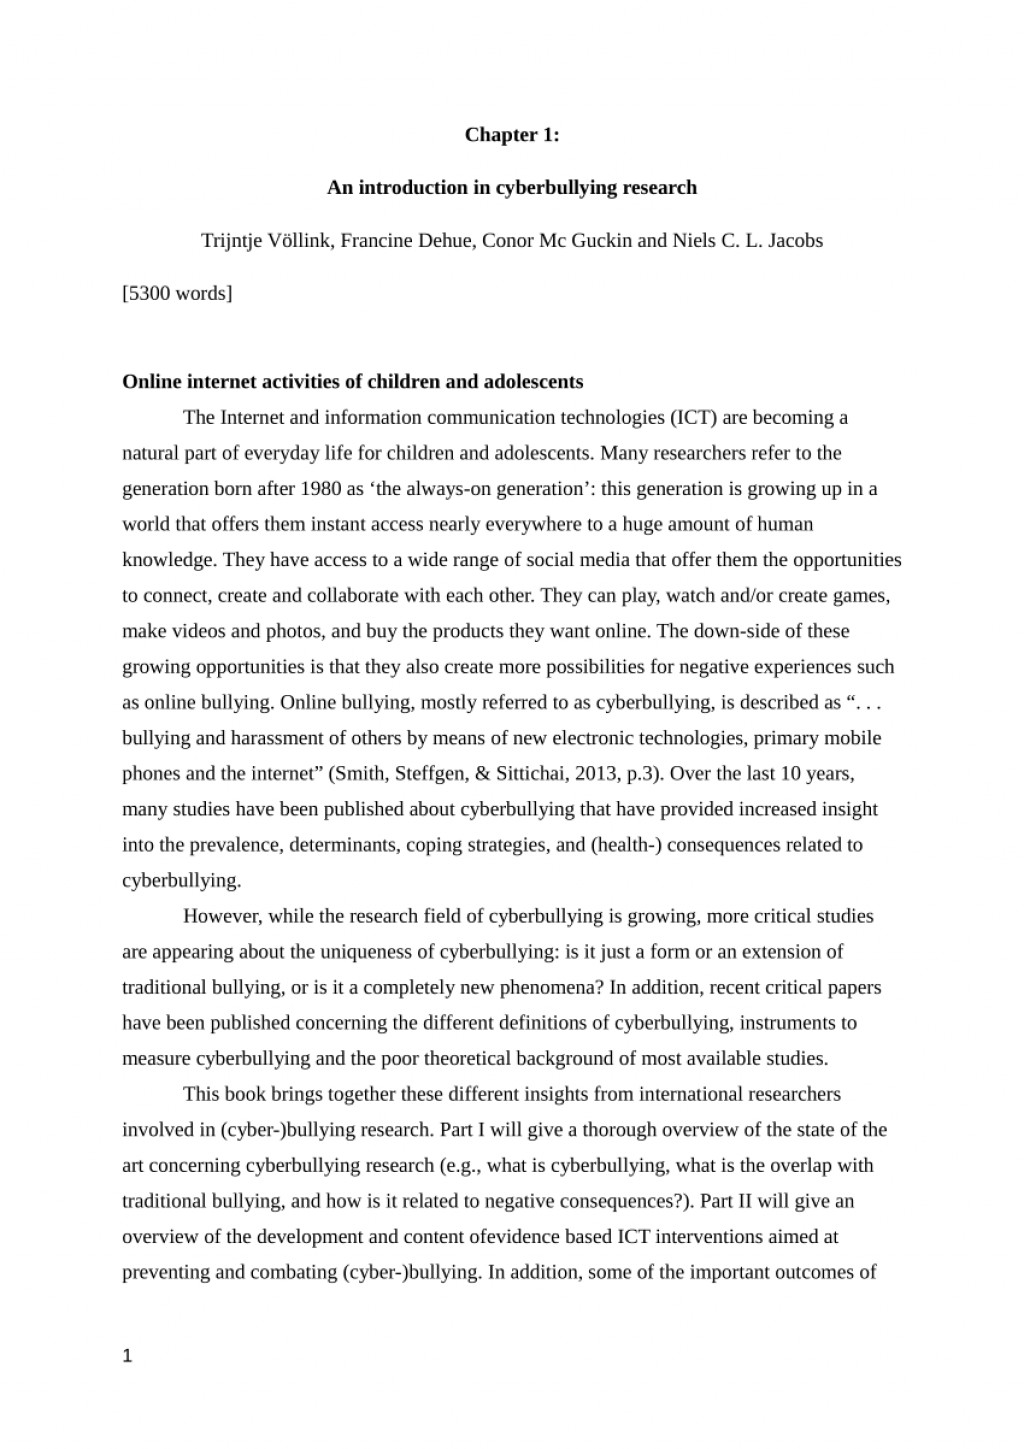 002 Bullying Research Paper Example Pdf Beautiful Large